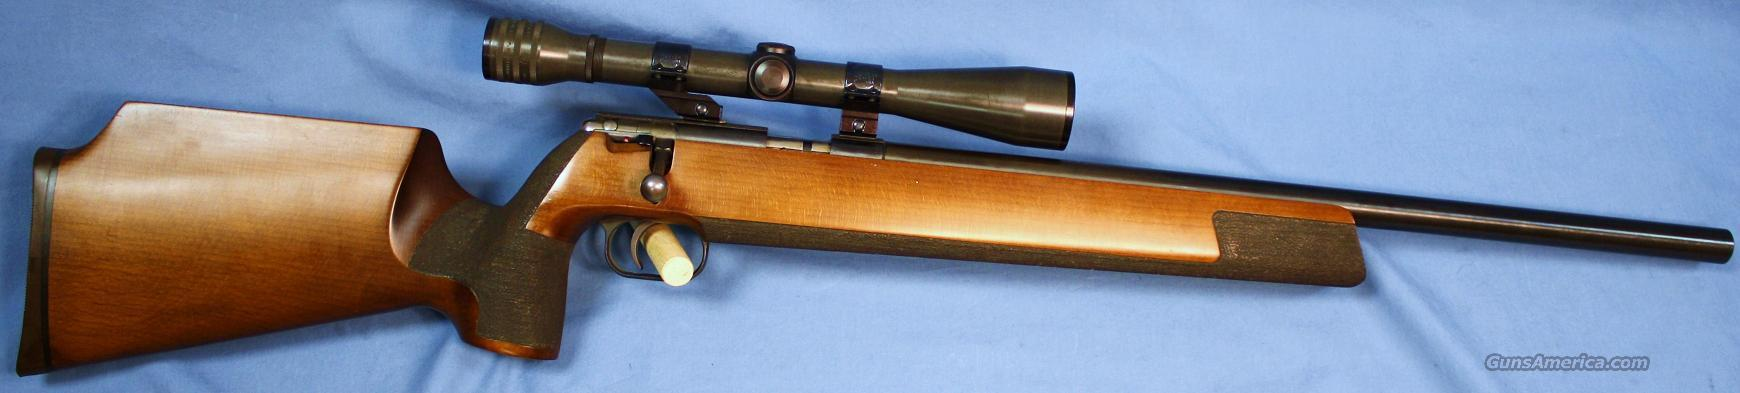 Anschutz Model 64 Silhouette Single Shot Bolt Action Target Rifle .22LR  Guns > Rifles > Anschutz Rifles